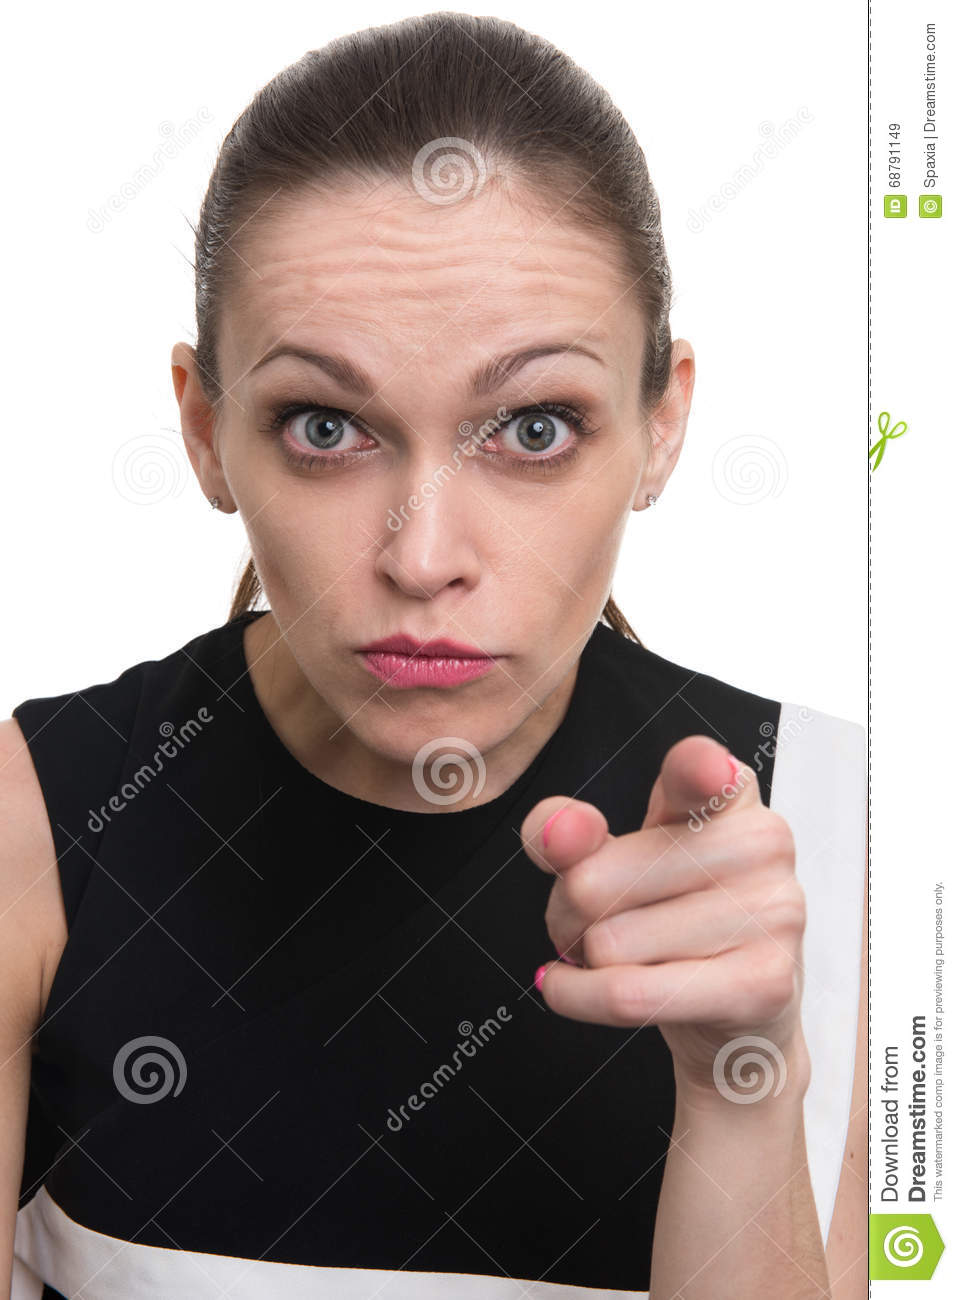 Angry Woman Pointing At You Stock Photo - Image: 68791149